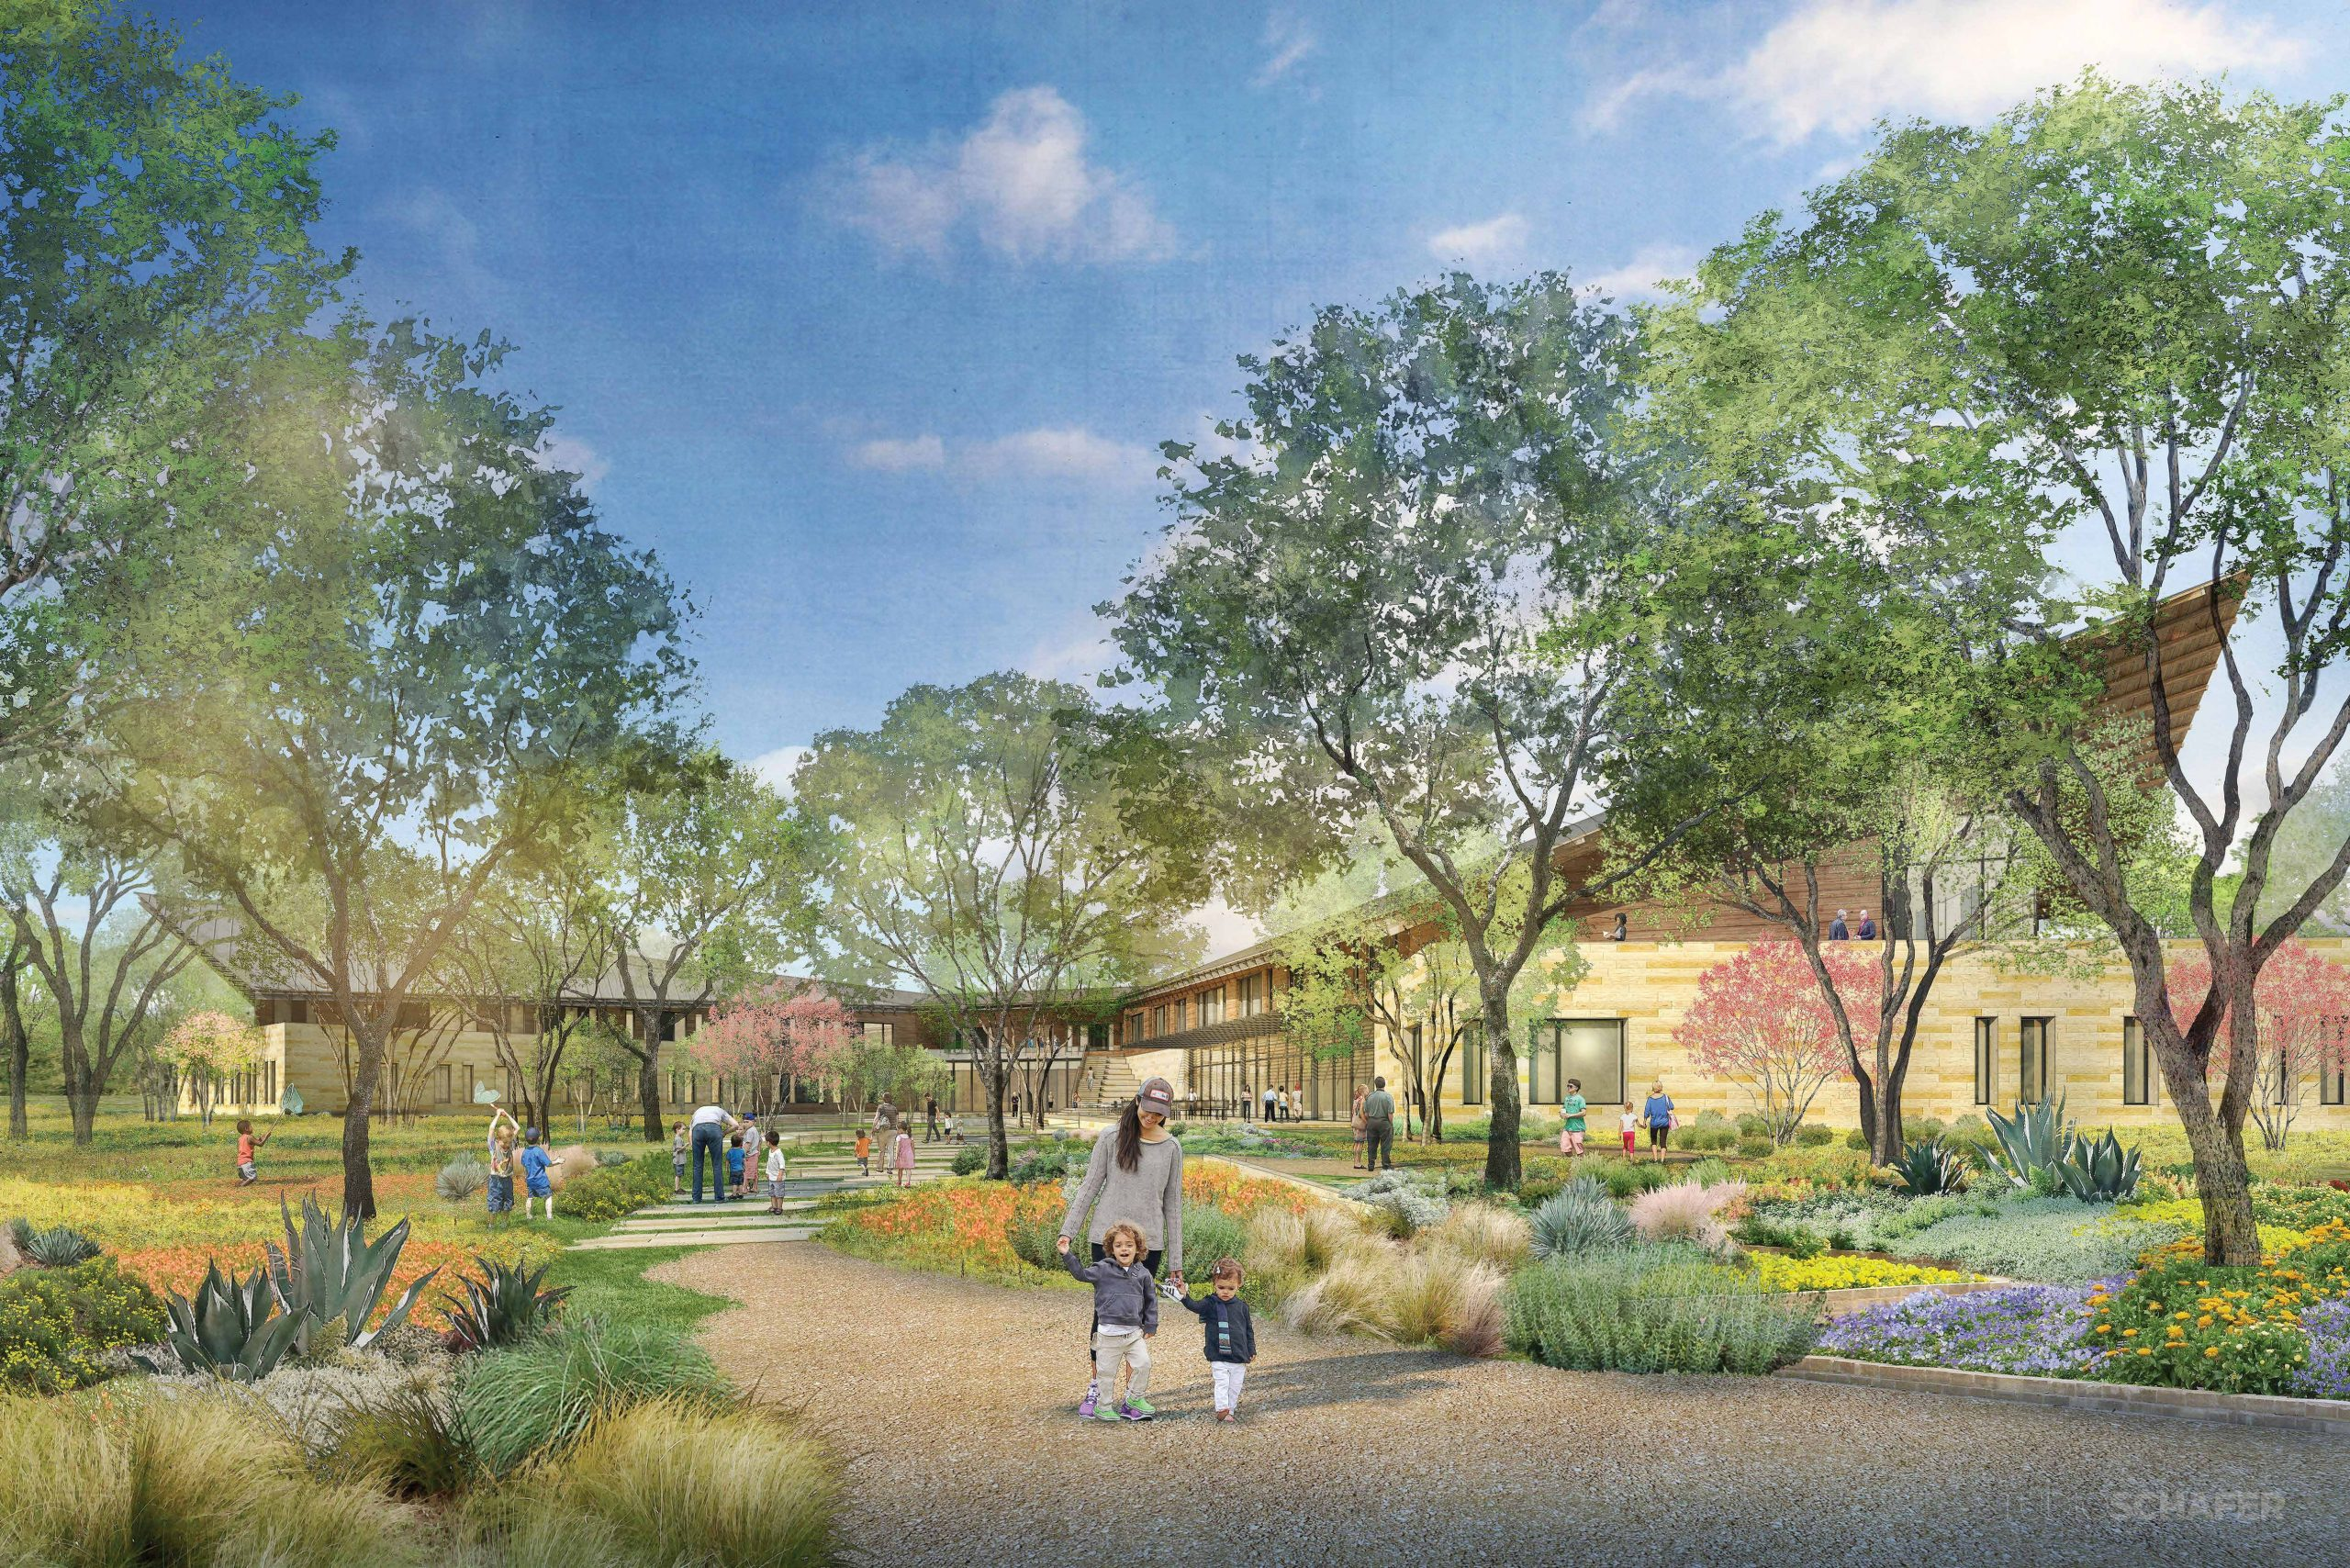 The new ChildSafe facility will feature an interior courtyard.